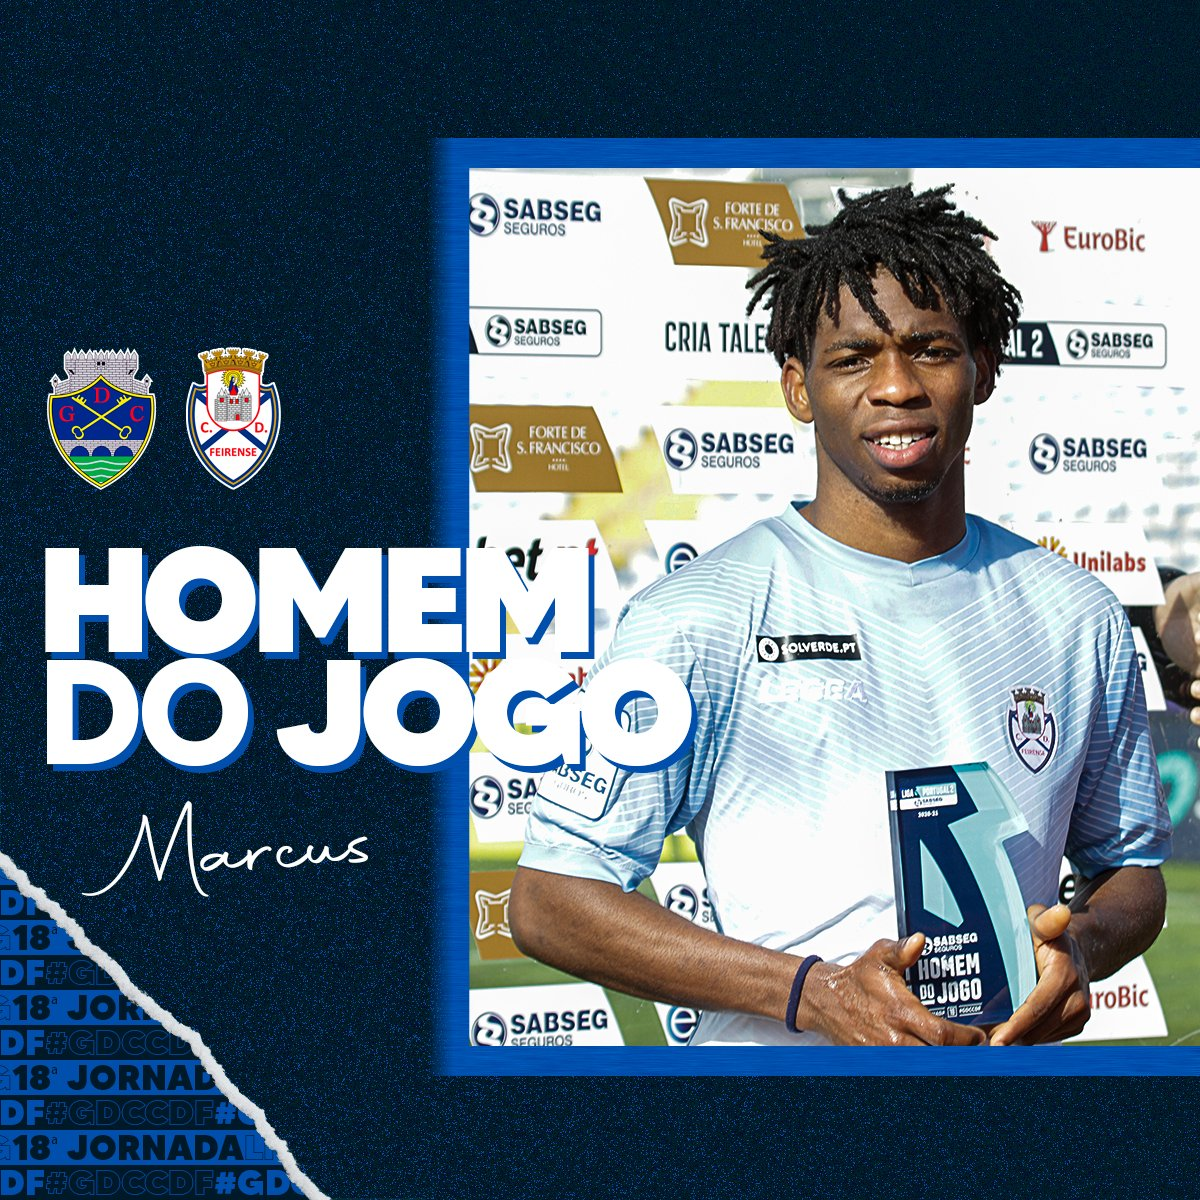 Nigerian Winger Marcus Scores Again, Claims 5th Man Of The Match Award In Feirense Away Win